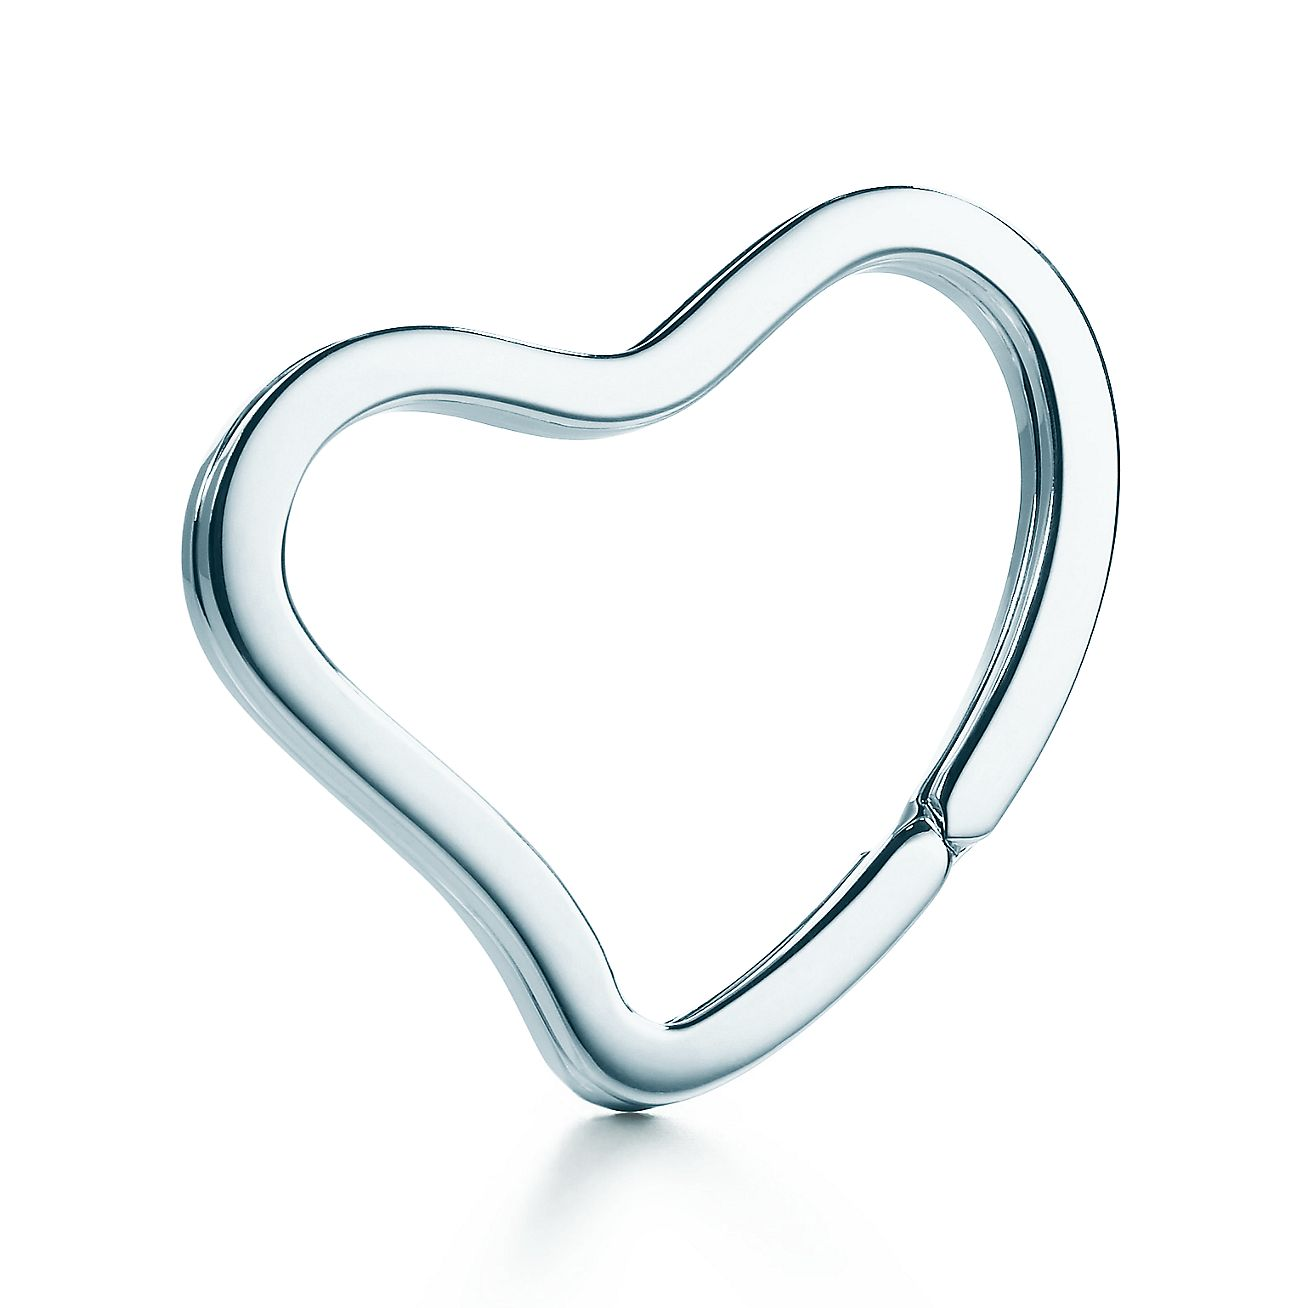 Accessories Key Rings Elsa Peretti Open Heart Key Ring 19976912 Tiffany Sterling Silver Key Chain